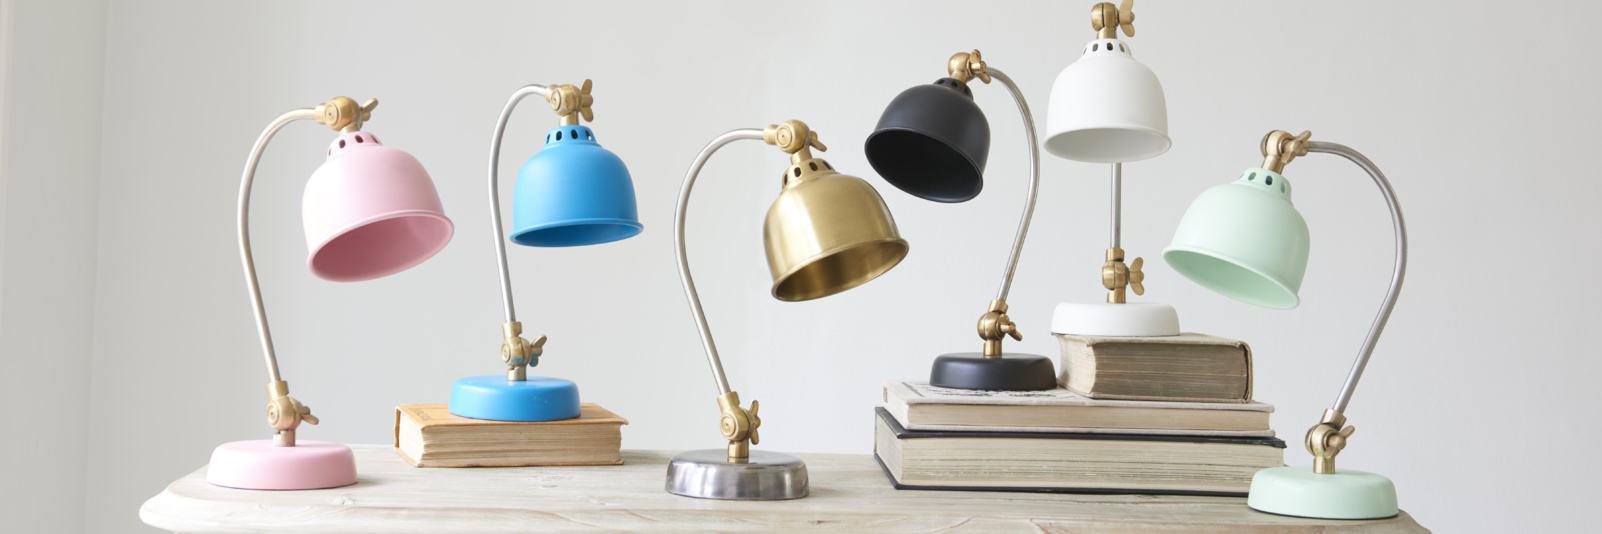 Cool and colourful kids' bedside lamps